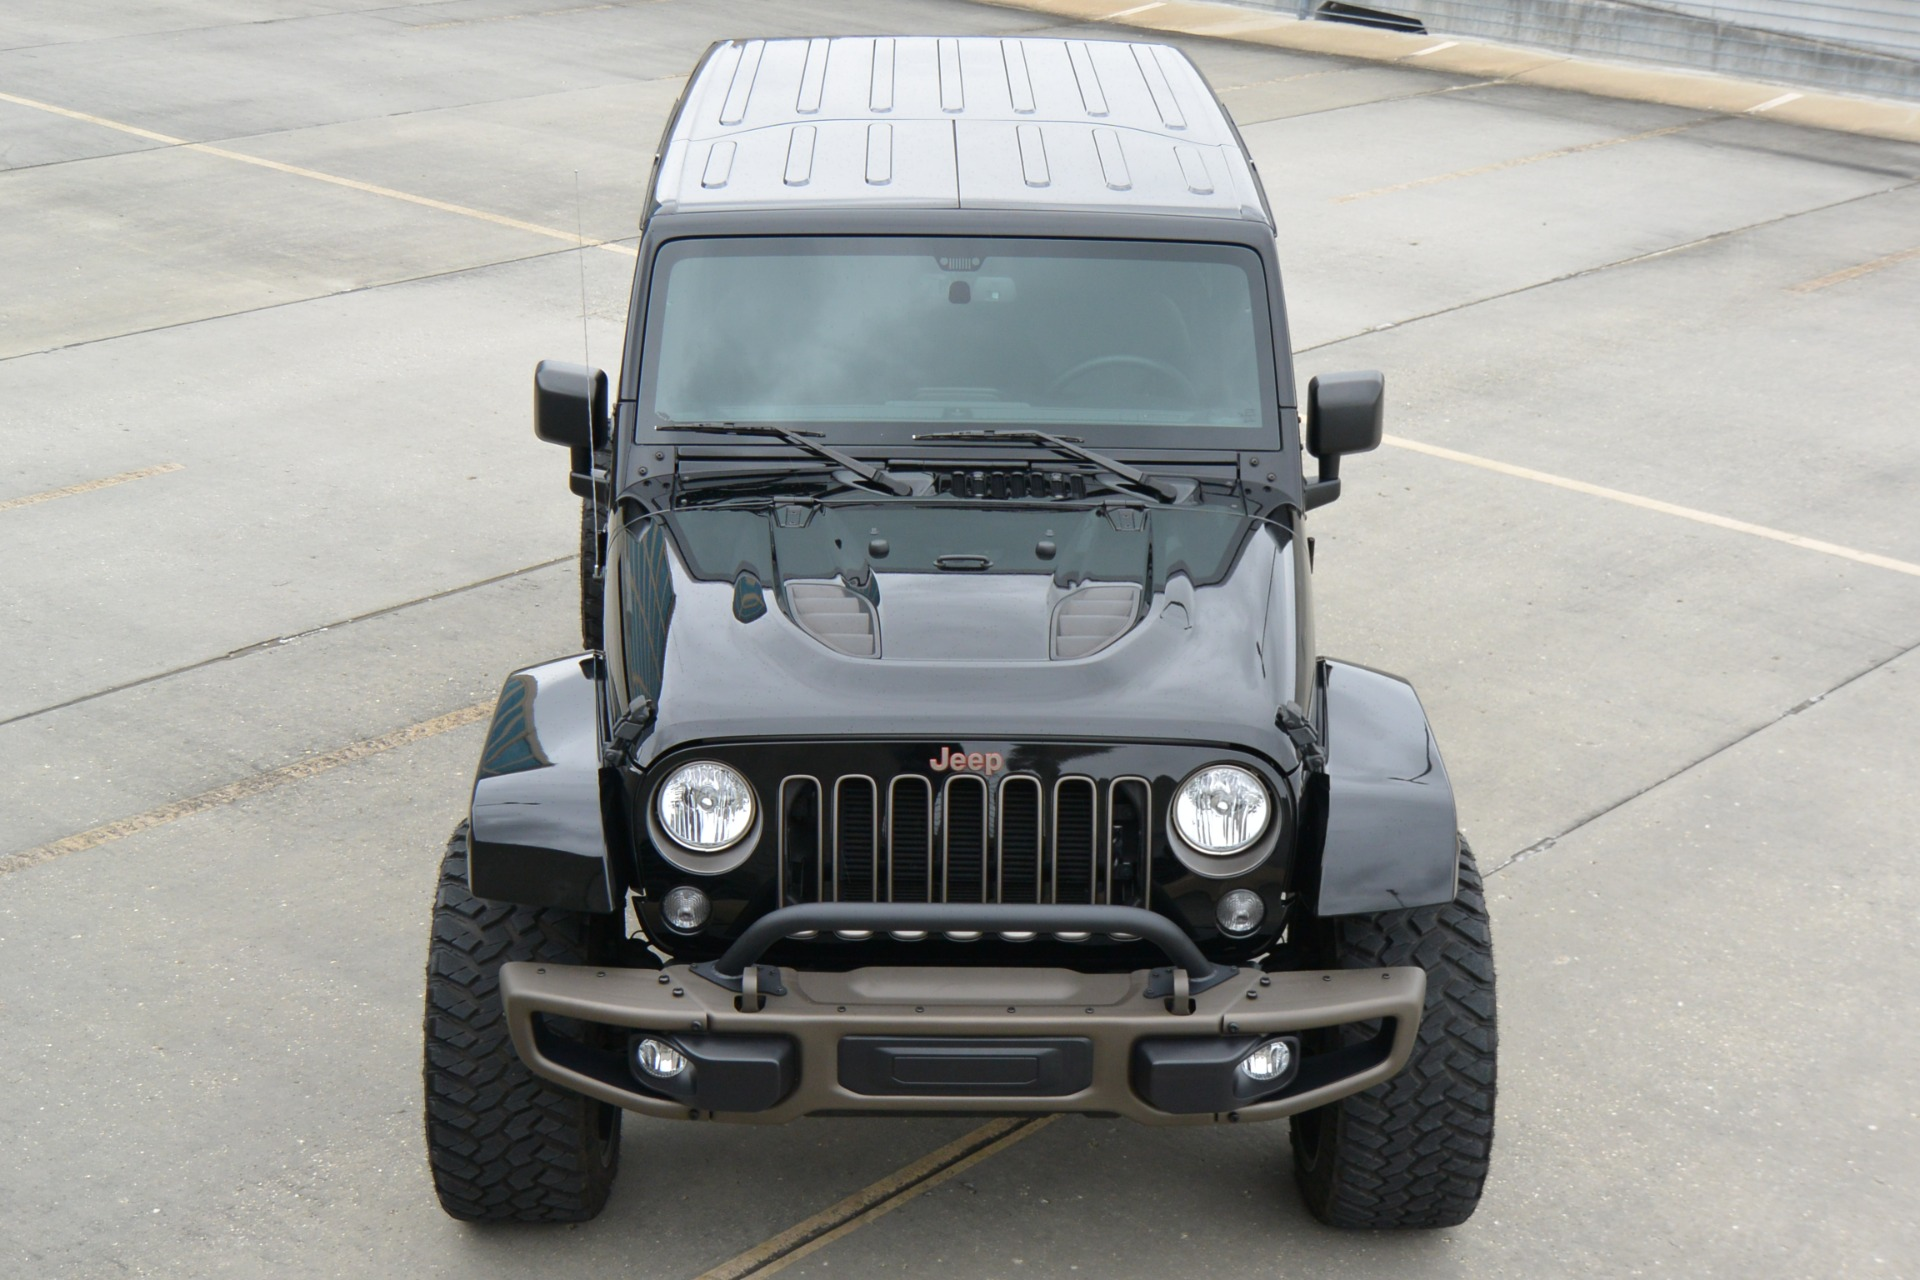 Used-2016-Jeep-Wrangler-Unlimited-75th-Anniversary-for-sale-Jackson-MS